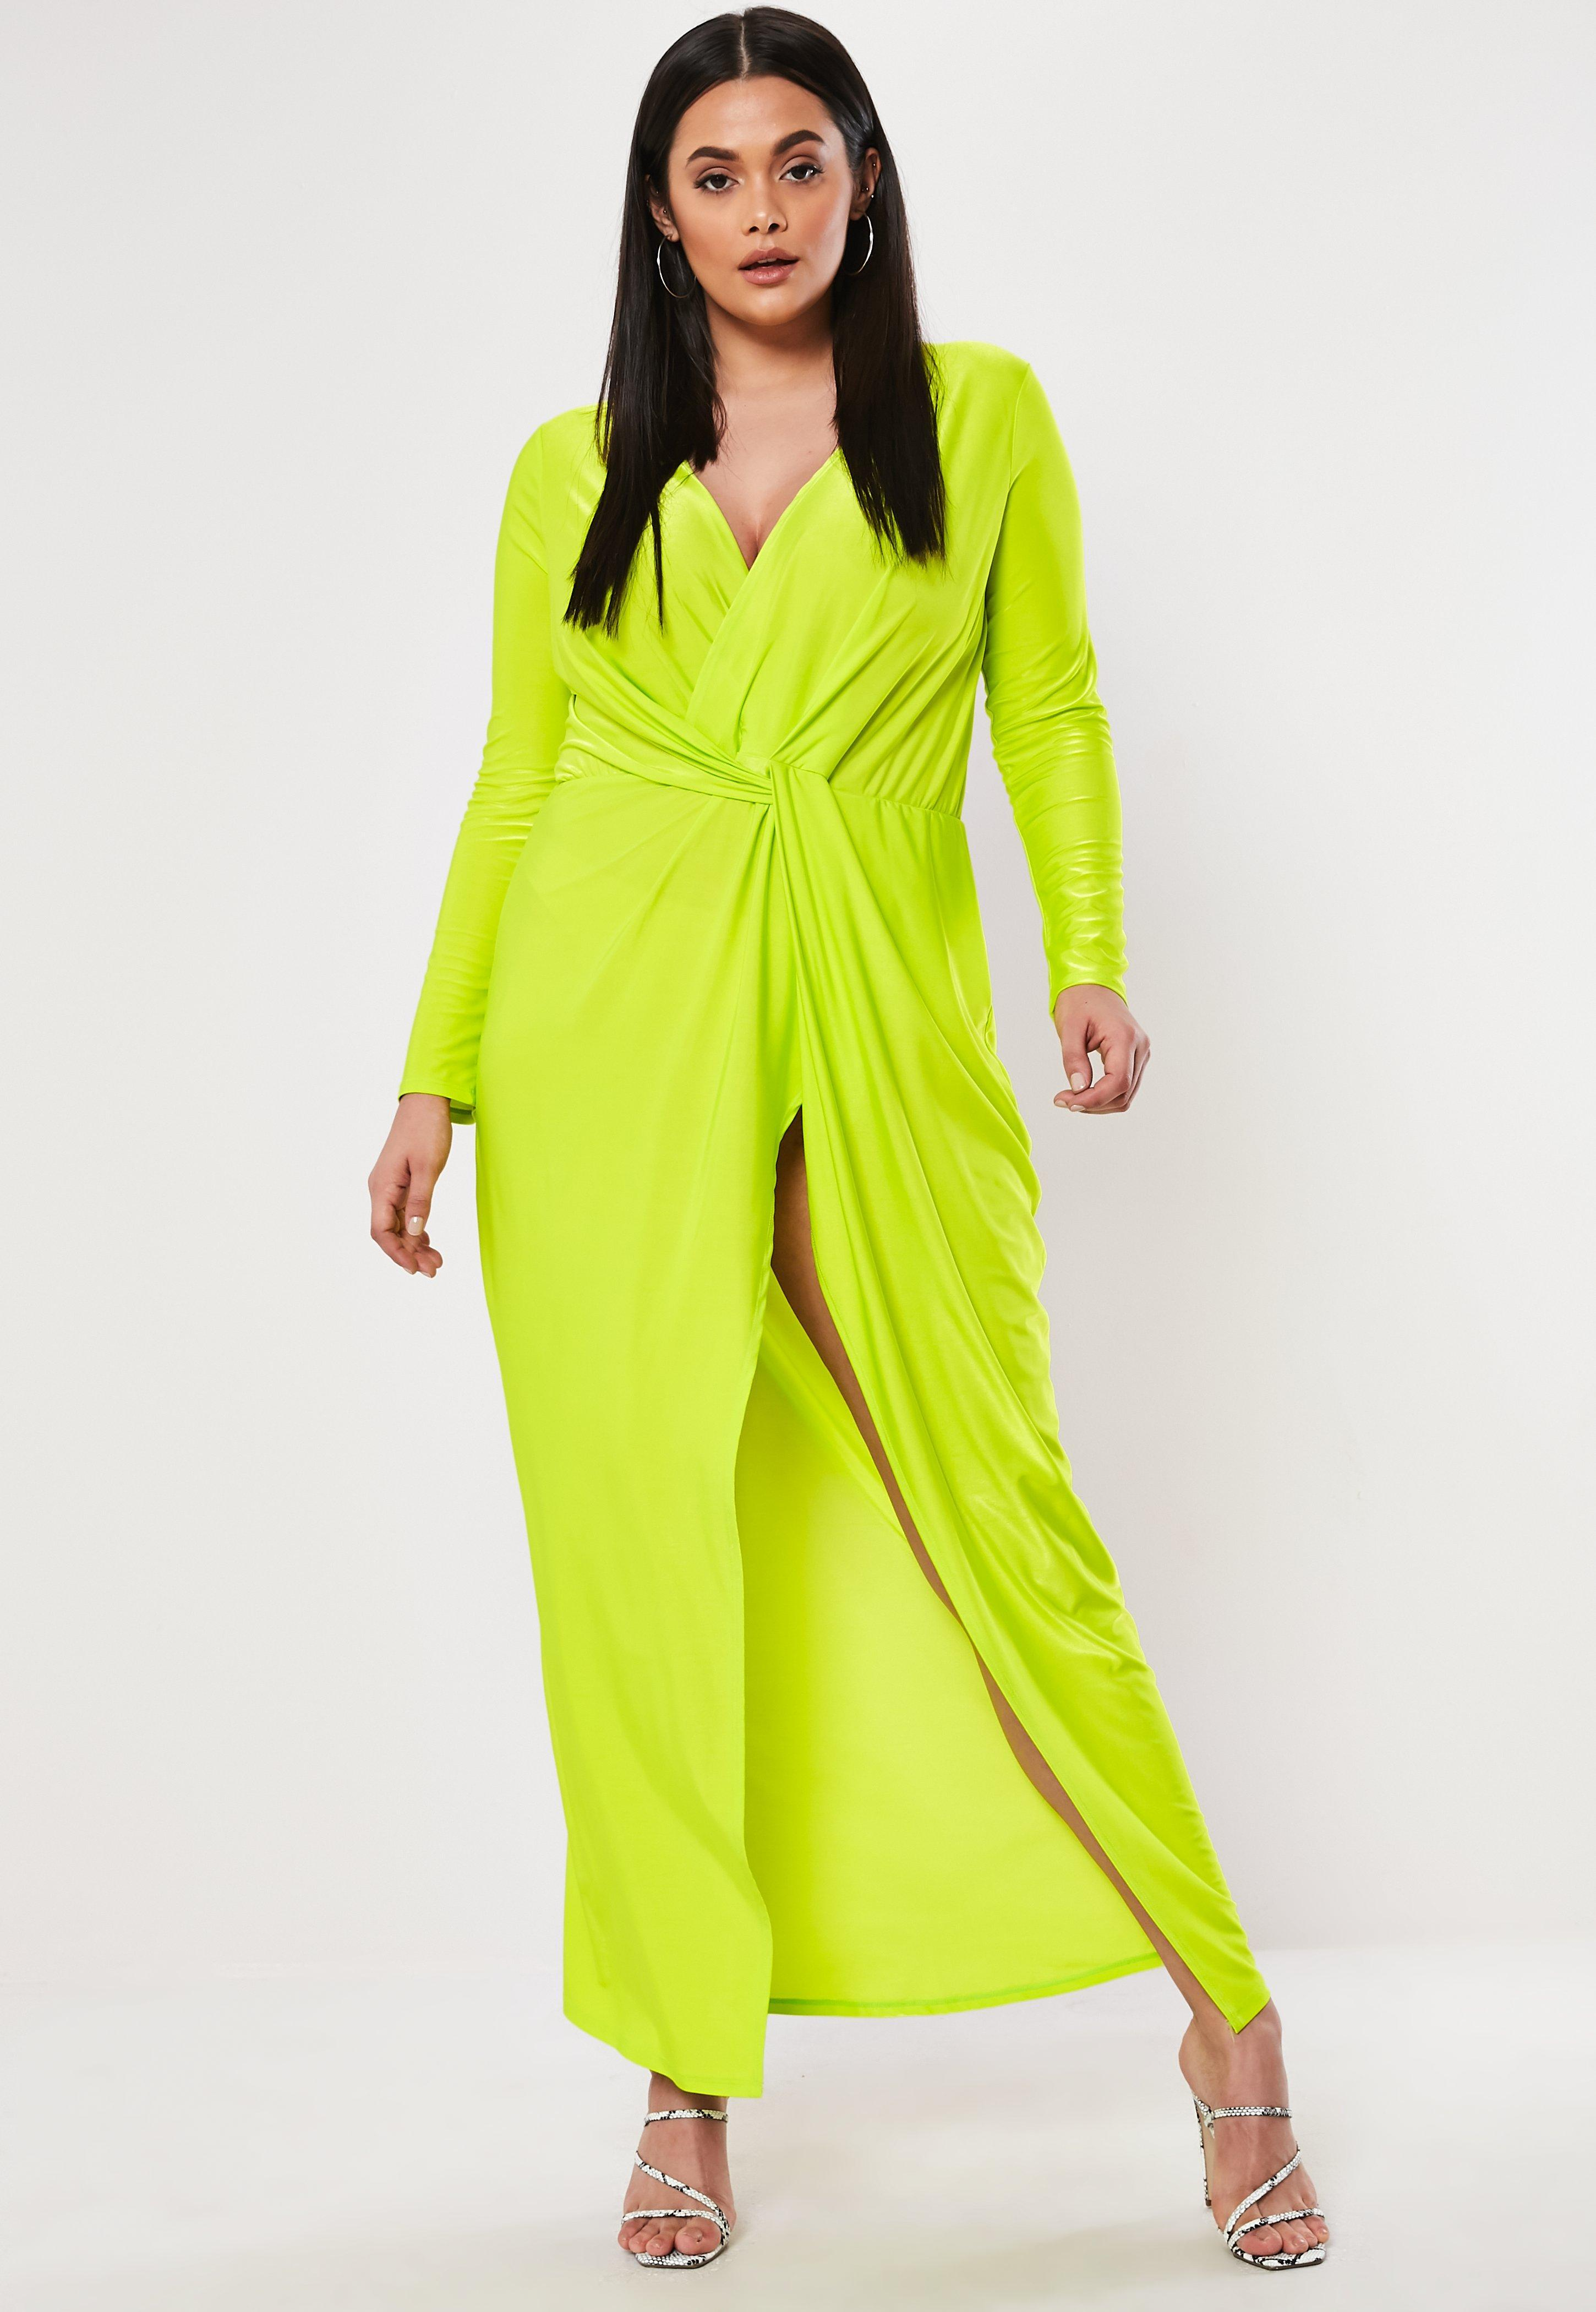 Lyst - Missguided Plus Size Lime Thigh Split Maxi Dress in ...